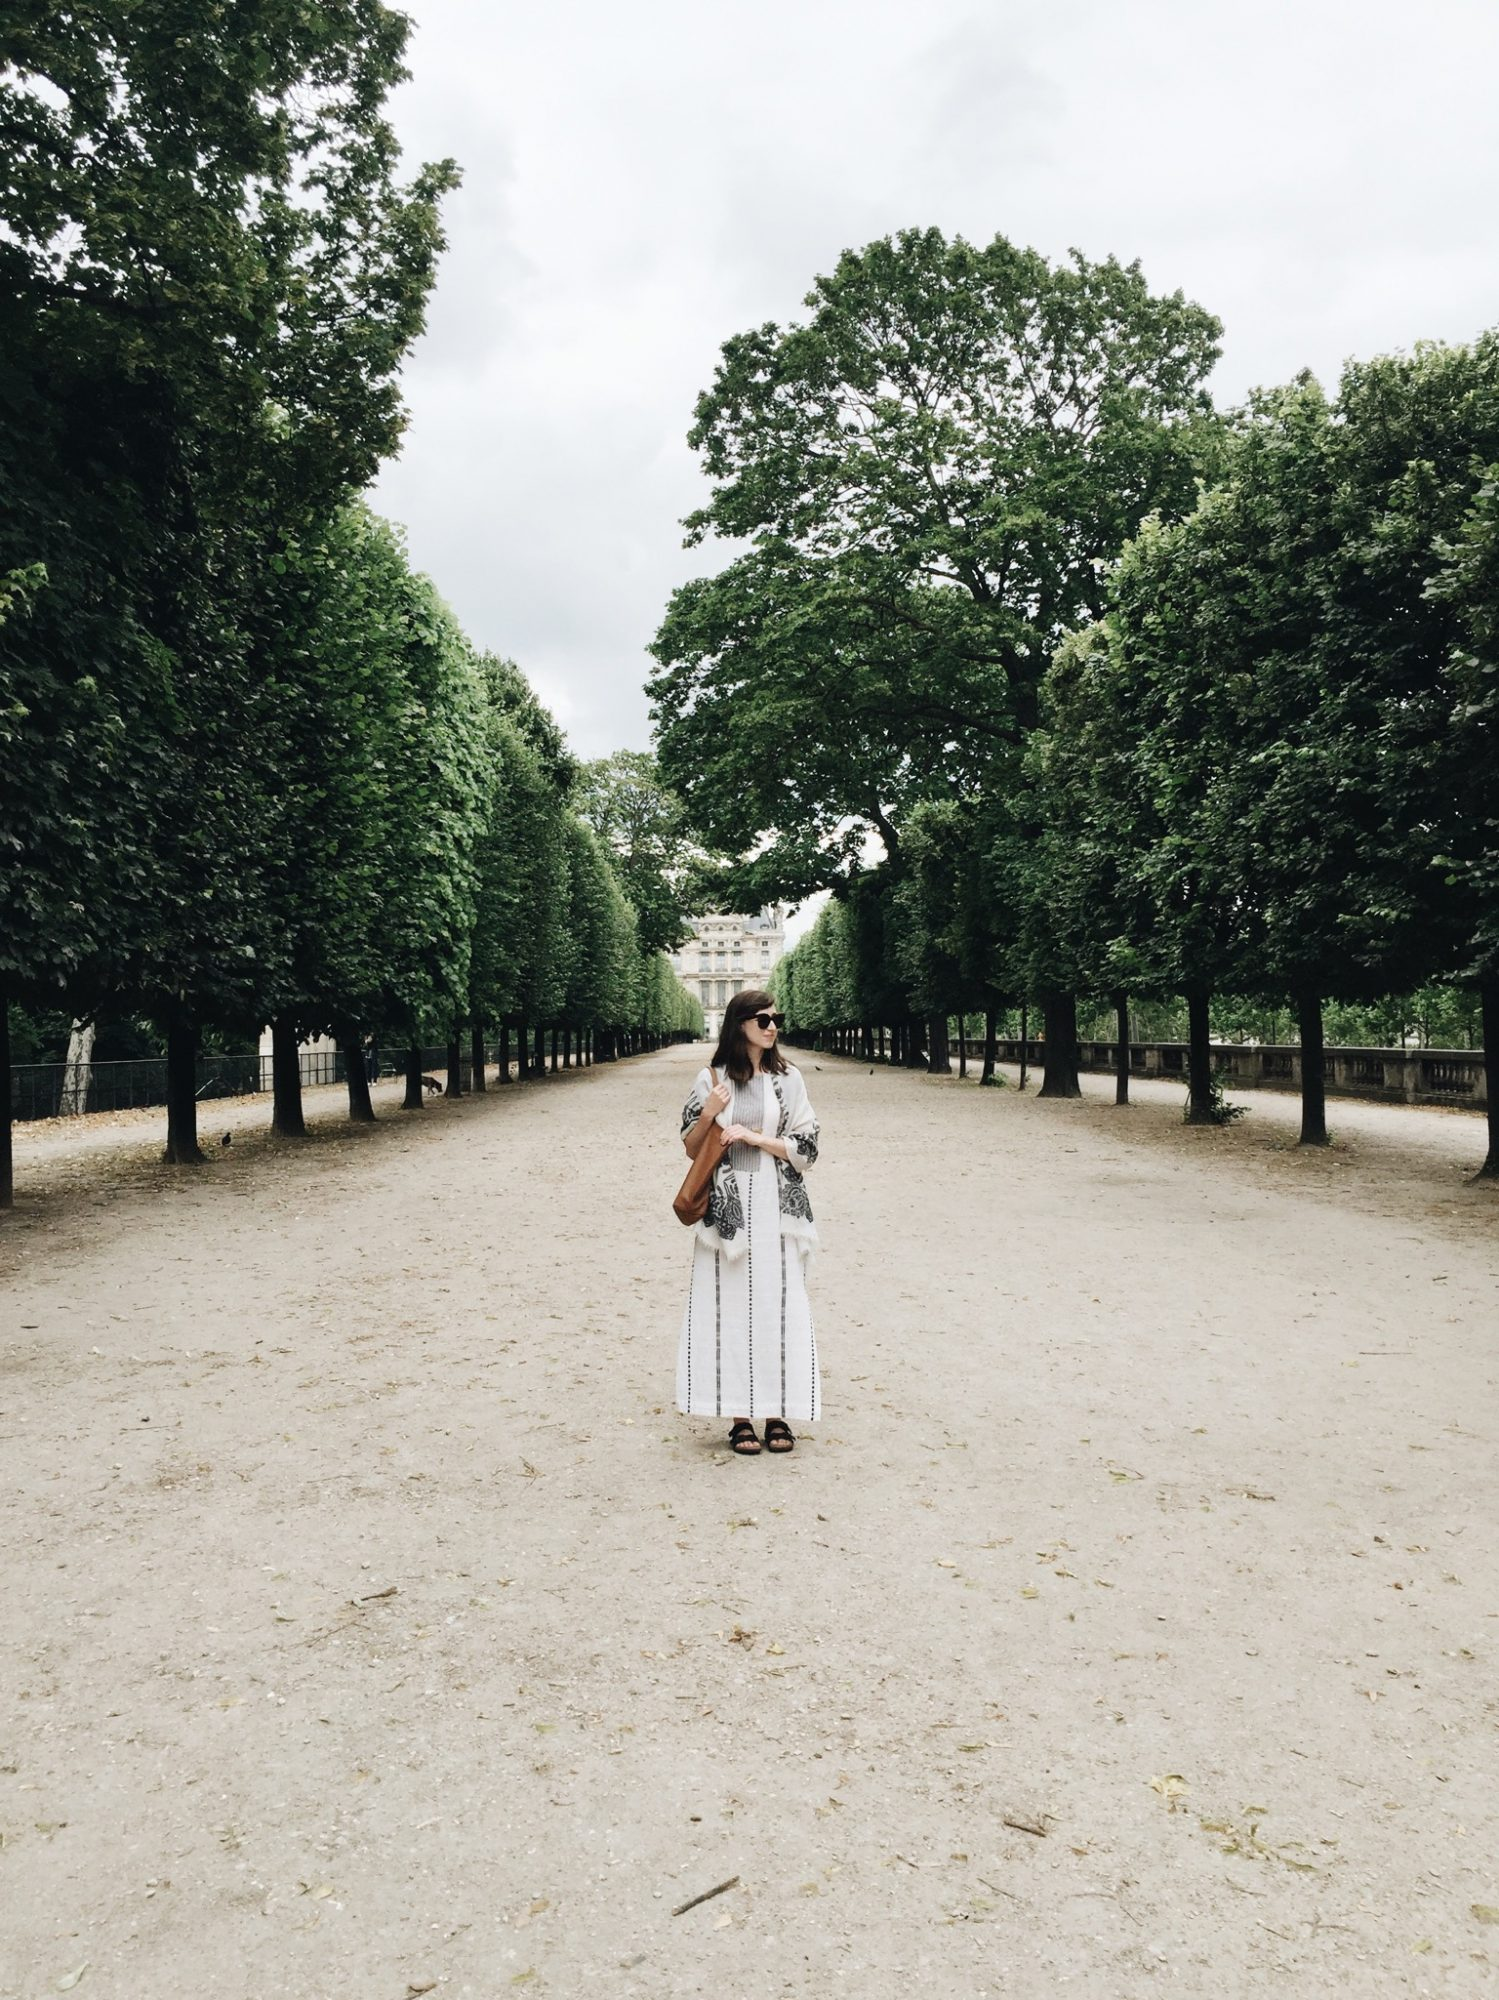 Style Bee - Trip to Paris + Amsterdam